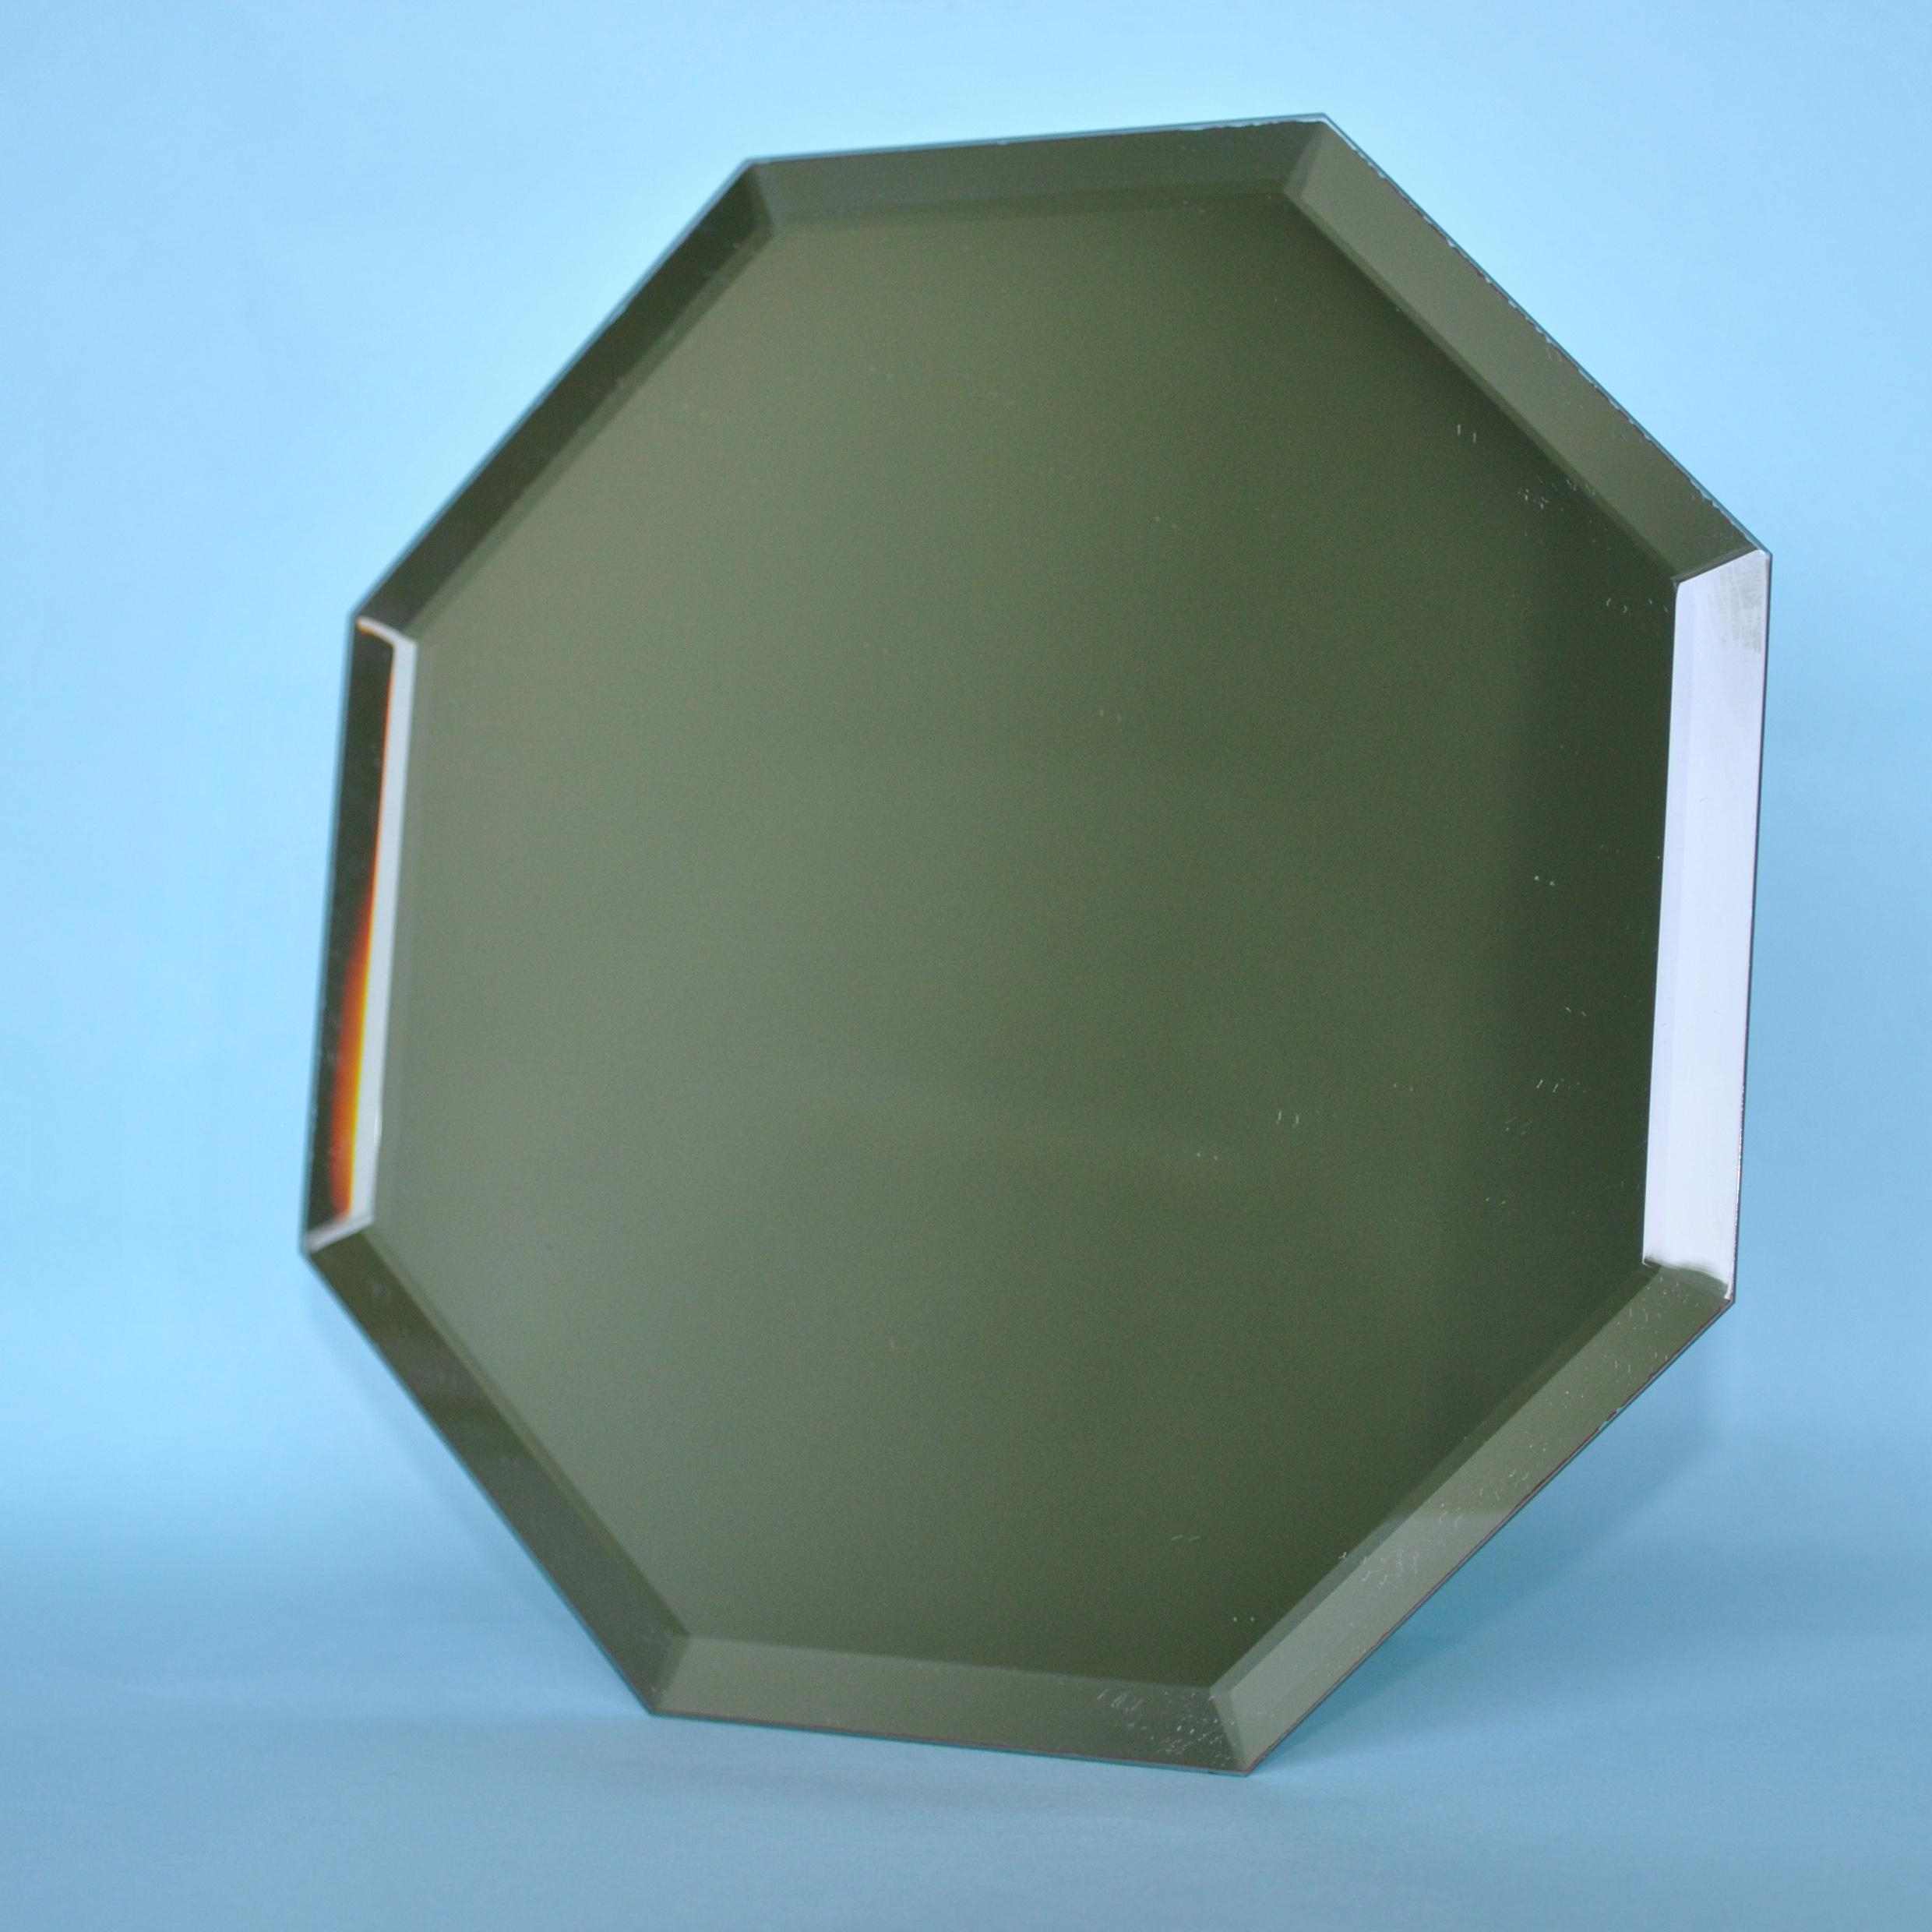 8mm Octagon Bevel Edge Silver Mirror China 8mm Octagon Bevel Edge Within Bevelled Edge Mirrors (View 11 of 15)